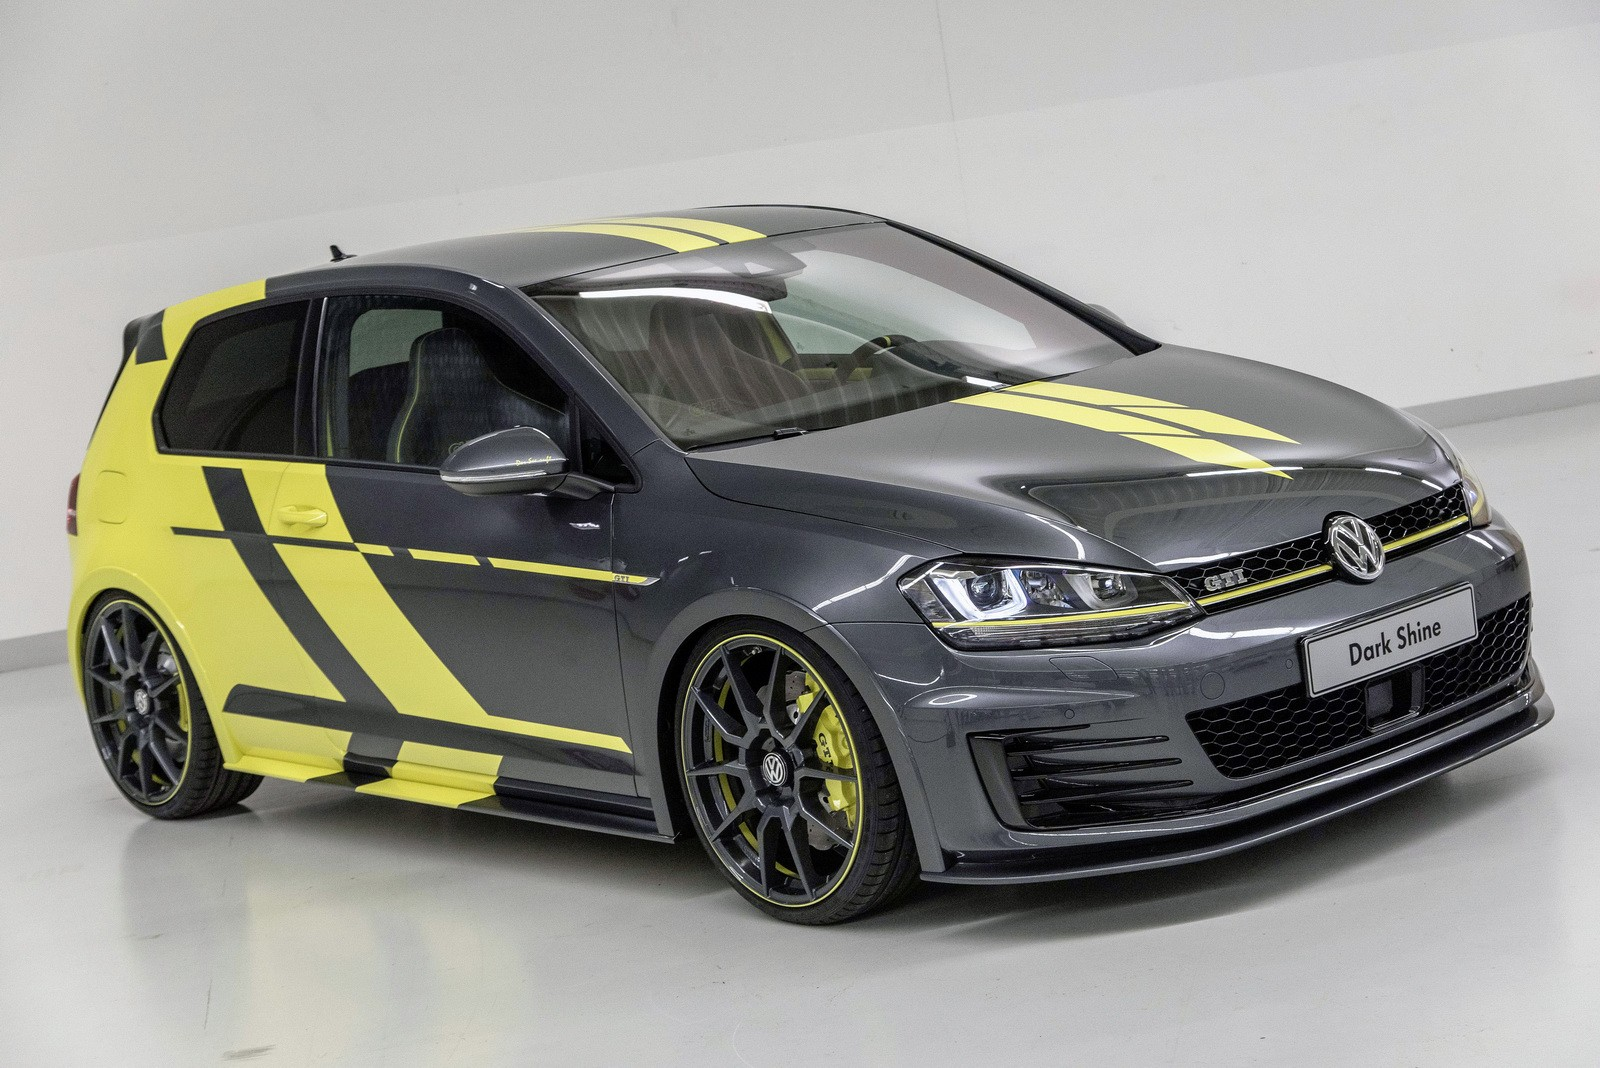 volkswagen-golf-gti-dark-shine-debuts-at-worthersee-2015-photo-gallery_4.jpg